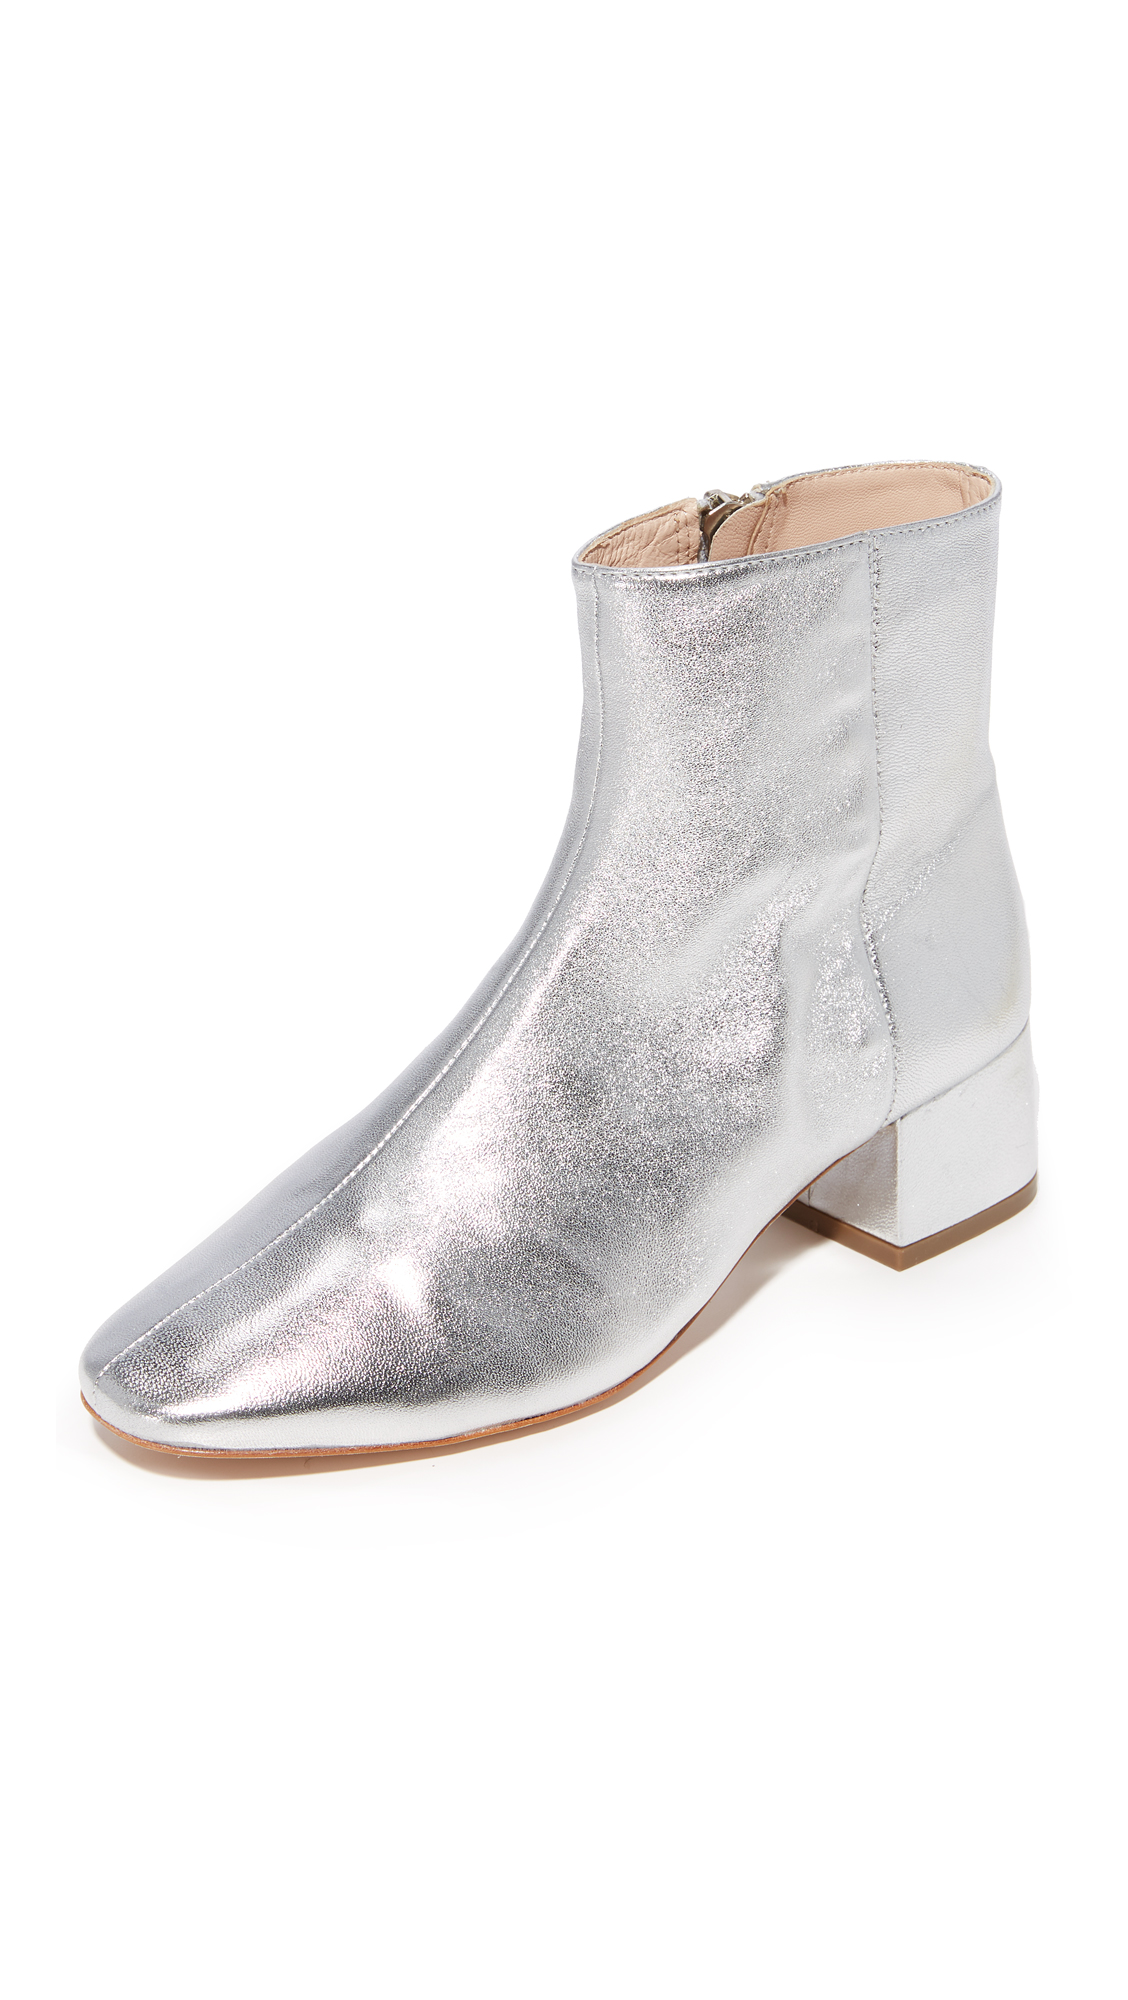 Loeffler Randall Carter Low Heel Ankle Booties - Silver